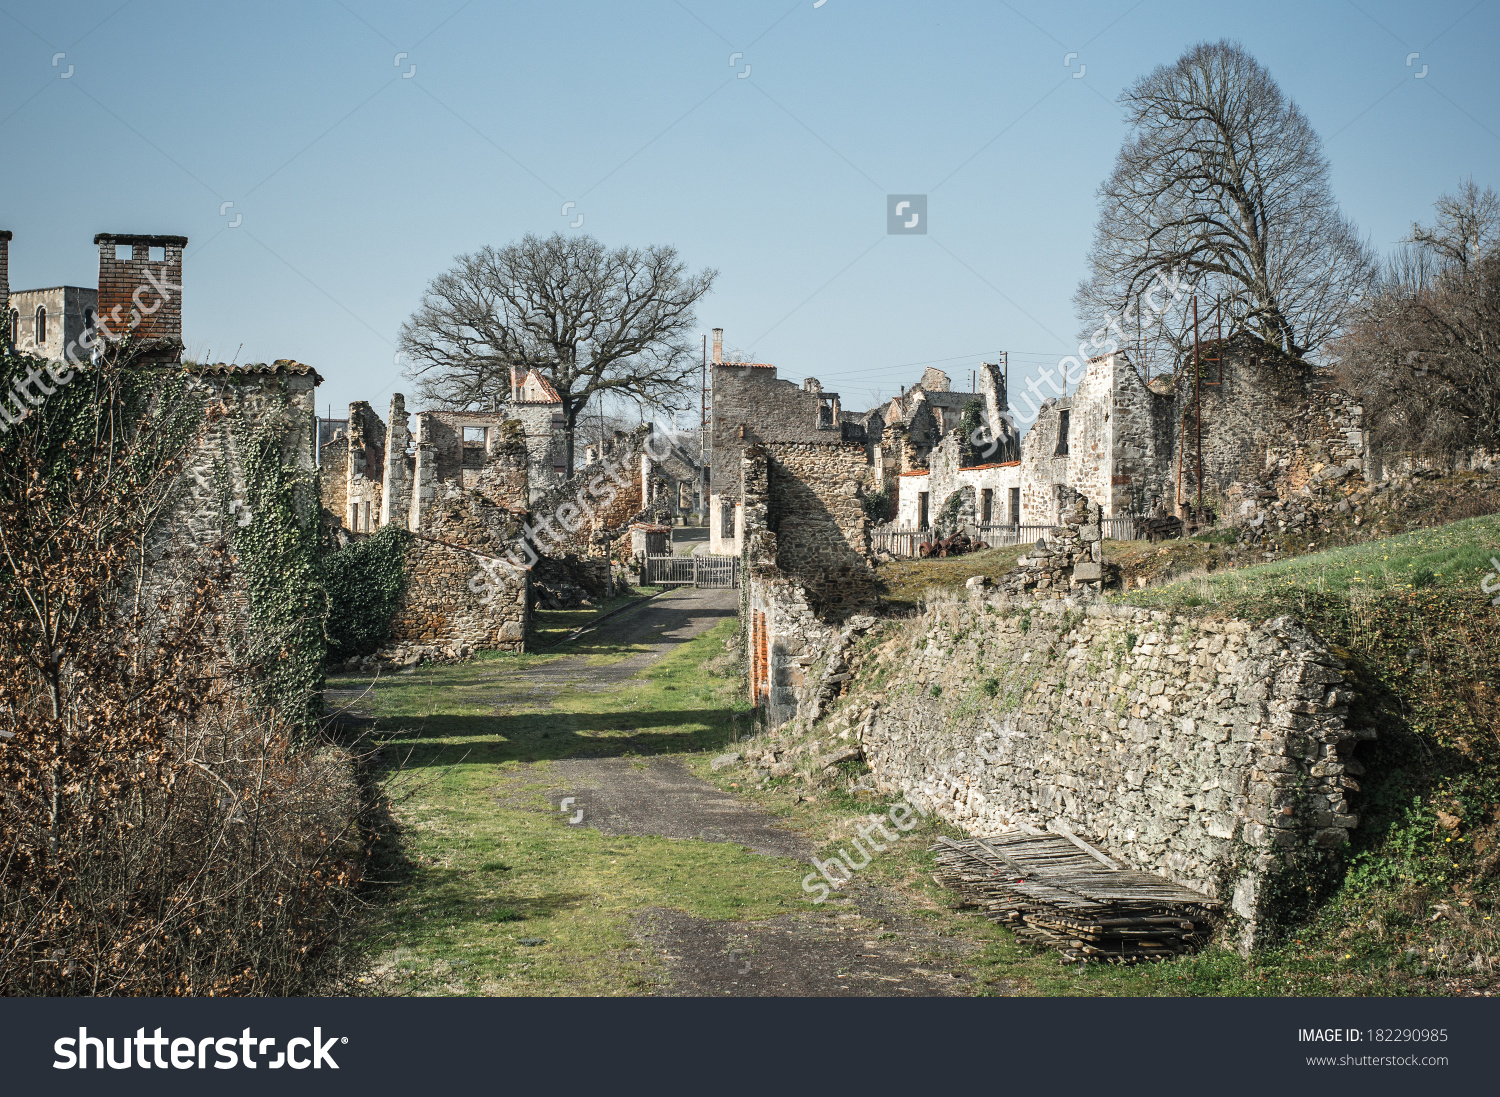 Ruin Village Oradoursurglane France This Village Stock Photo.